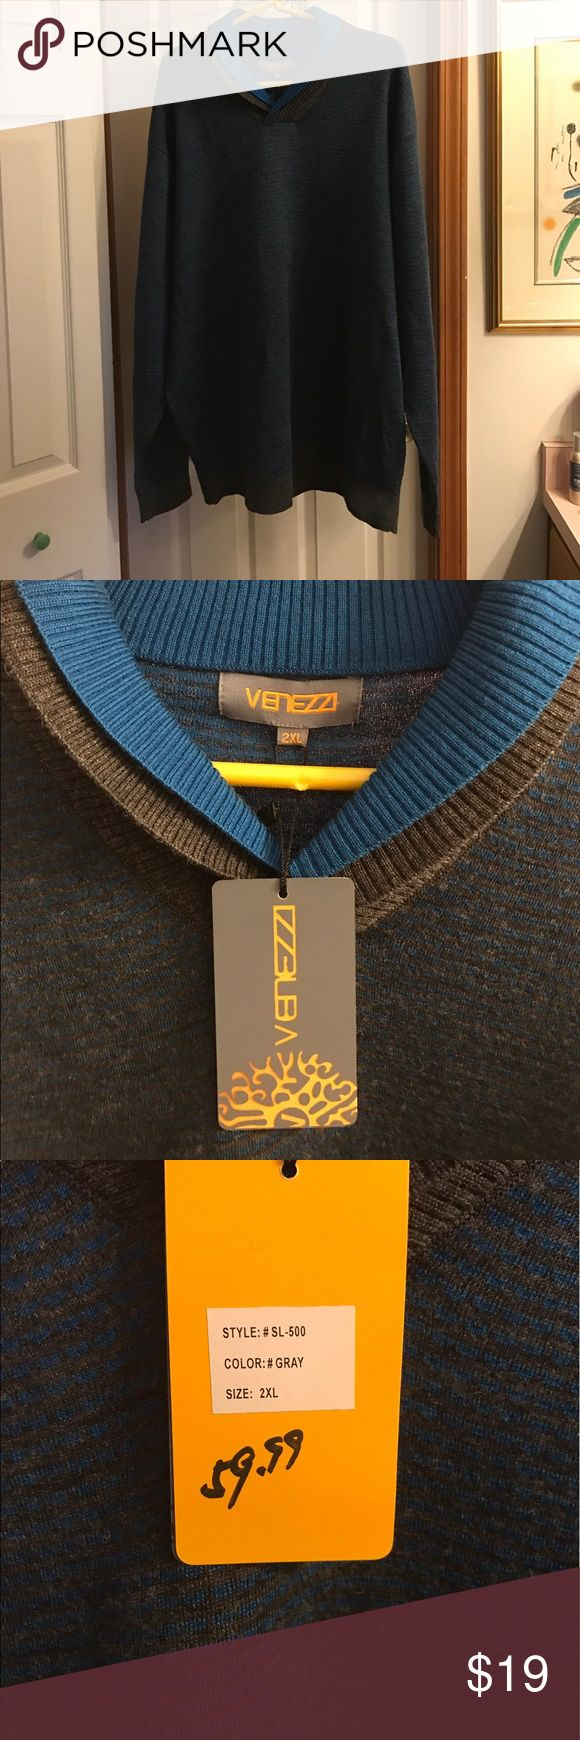 🔷🔹NWT🔹🔷Venezzi Men's 2X Big & Tall Sweater New With Tags!  2X Big and Tall Venizzi Men's Sweater. Very thin blue and gray lines with a double collar and gray cuffs and bottom. This sweater is fab!  Even though it's a men's sweater, it's the perfect sweater for anyone to cuddle up in. Maybe by the camp fire?🔥 Venezzi Sweaters